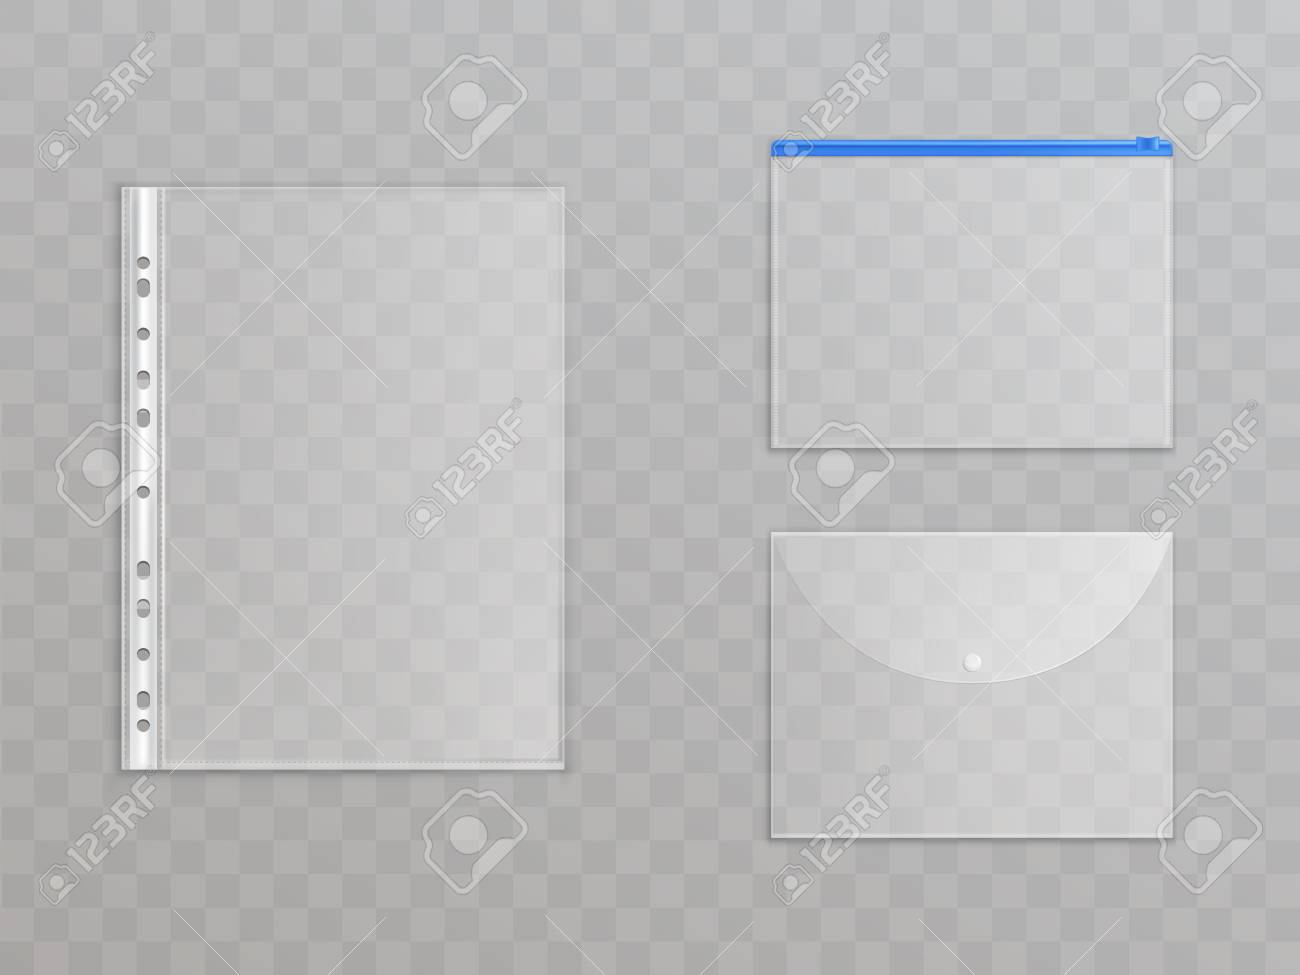 Vector transparent plastic files - set of office supplies. Cellophane folders with zipper, button to protect documents. Translucent stationery collection isolated on background. - 109764988